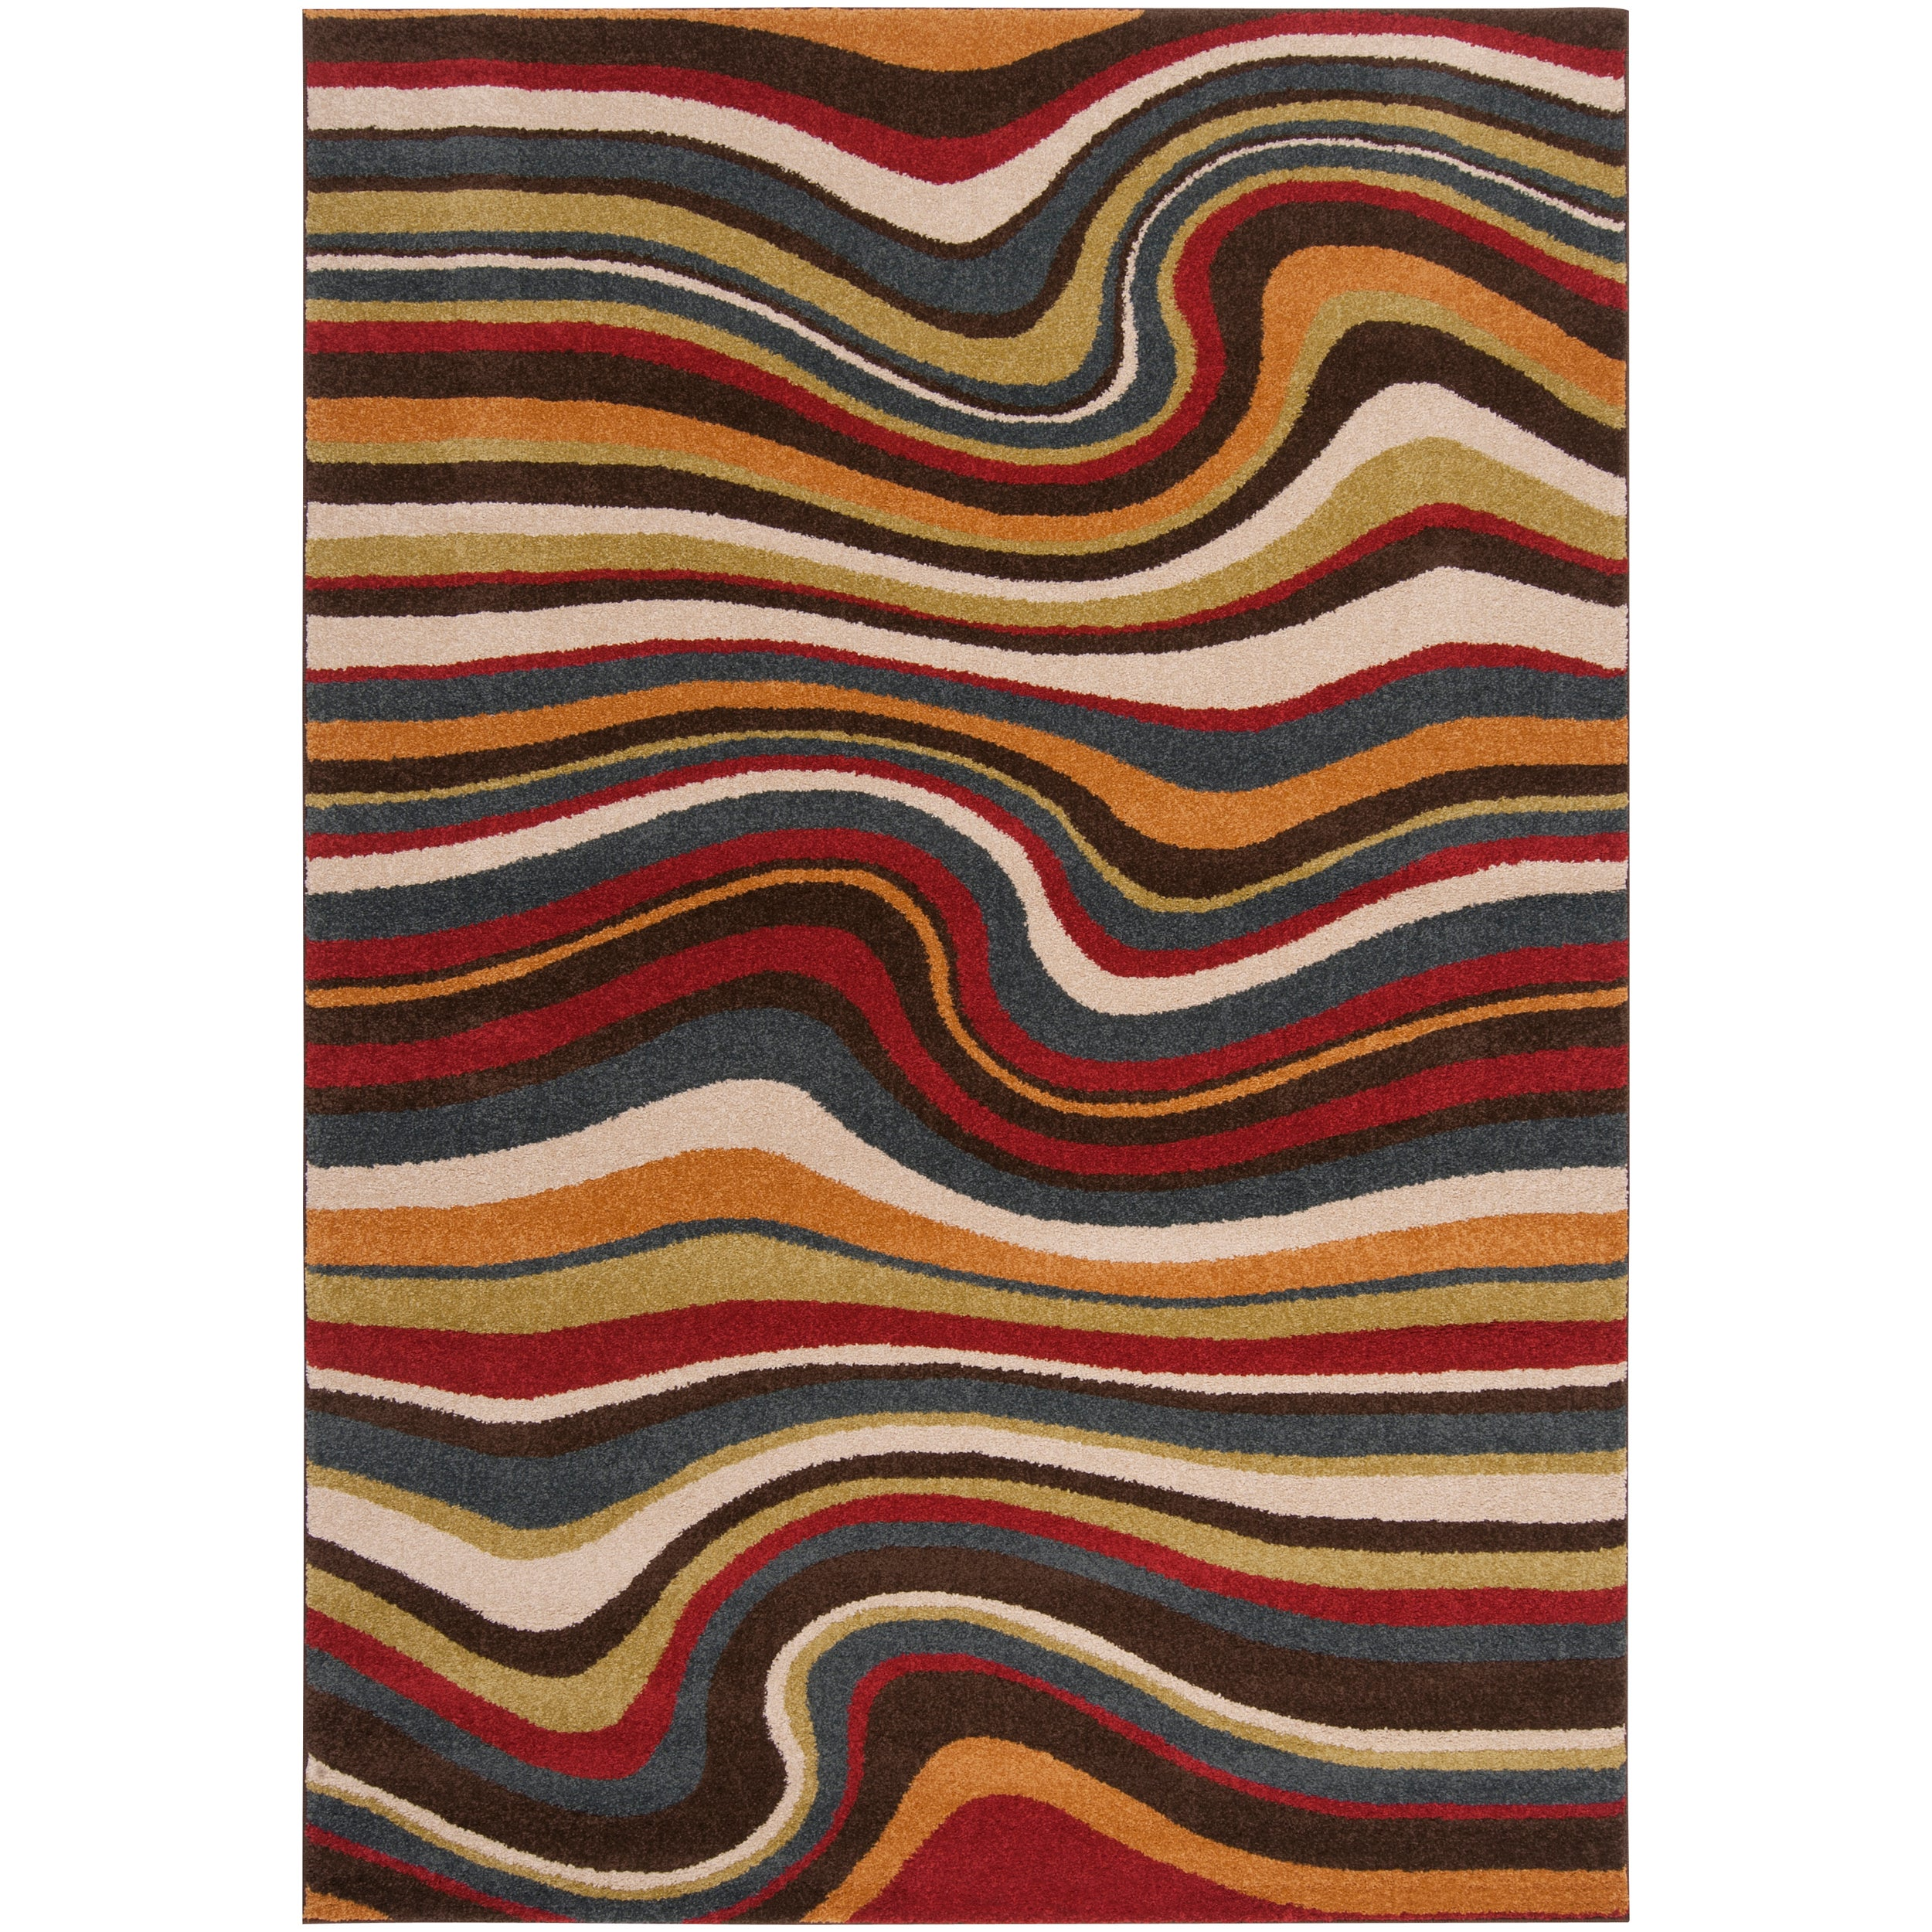 Meticulously Woven Contemporary Multi Colored Stripe Filton Abstract Rug (7'10 x 10')